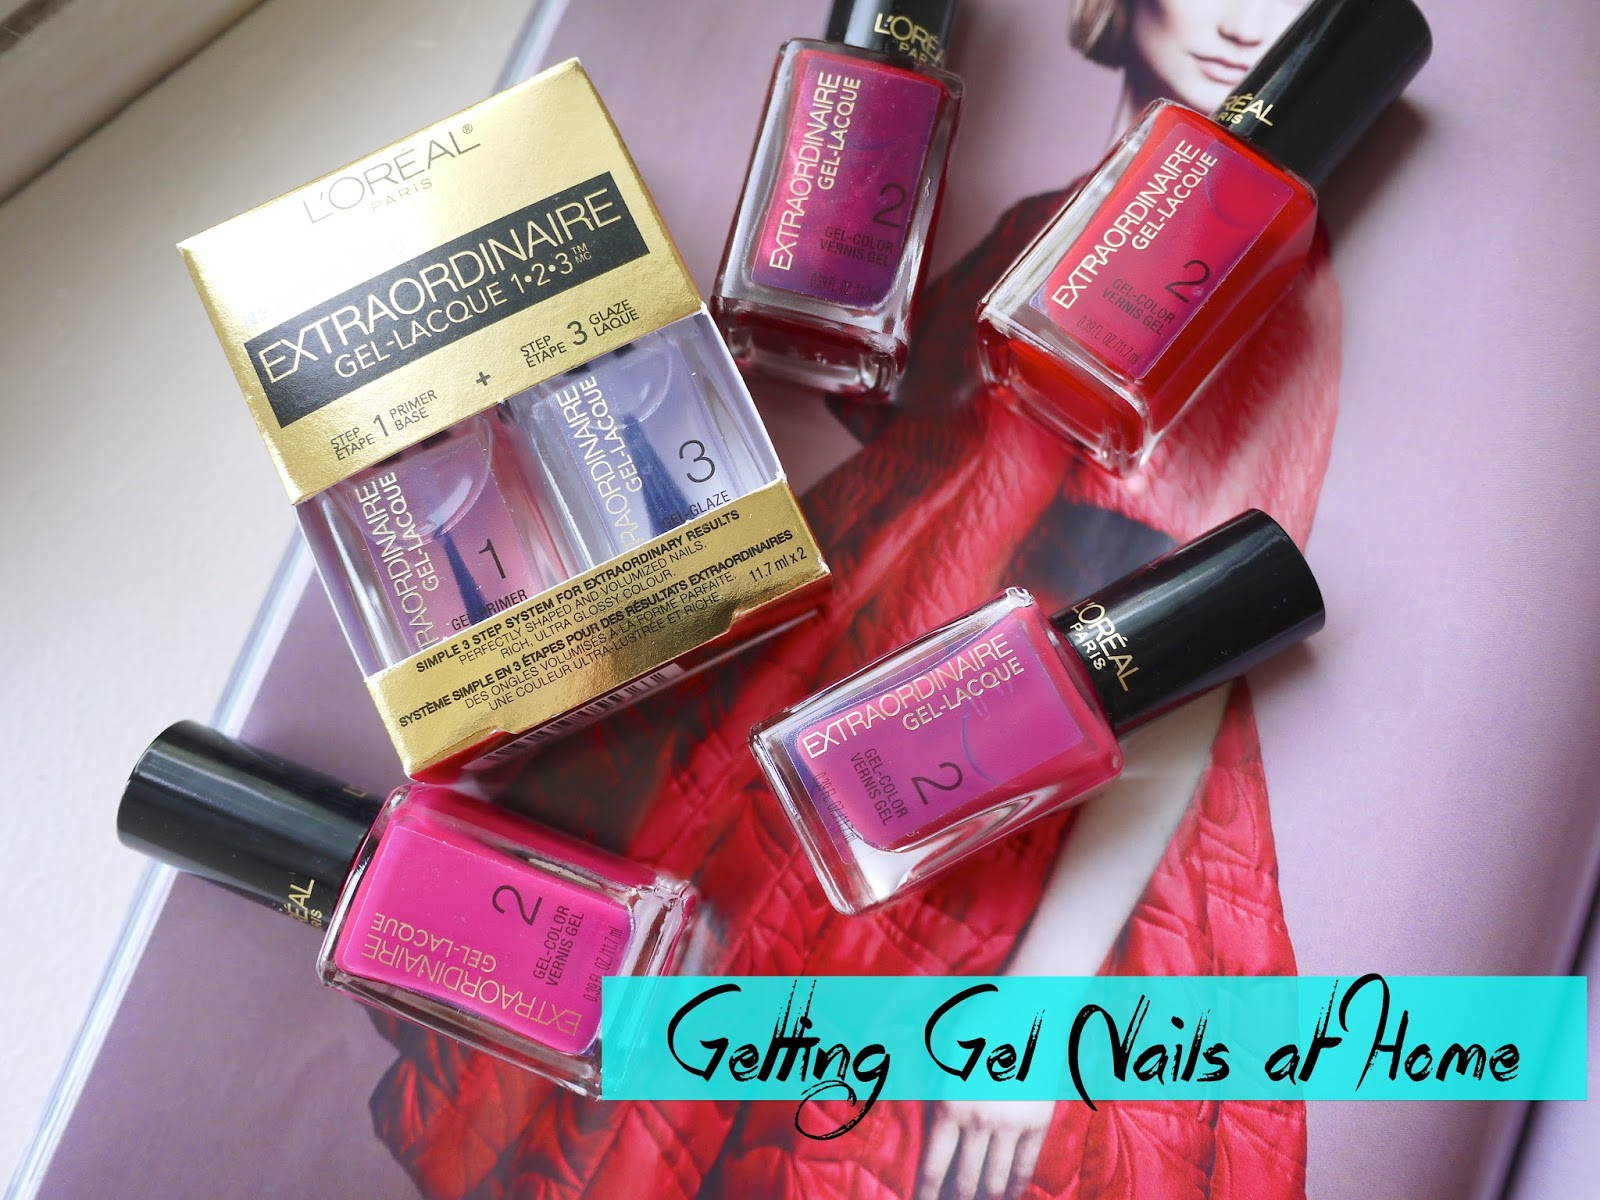 l'oreal extraordinaire gel-lacque 1-2-3 primer and glaze kit review swatch